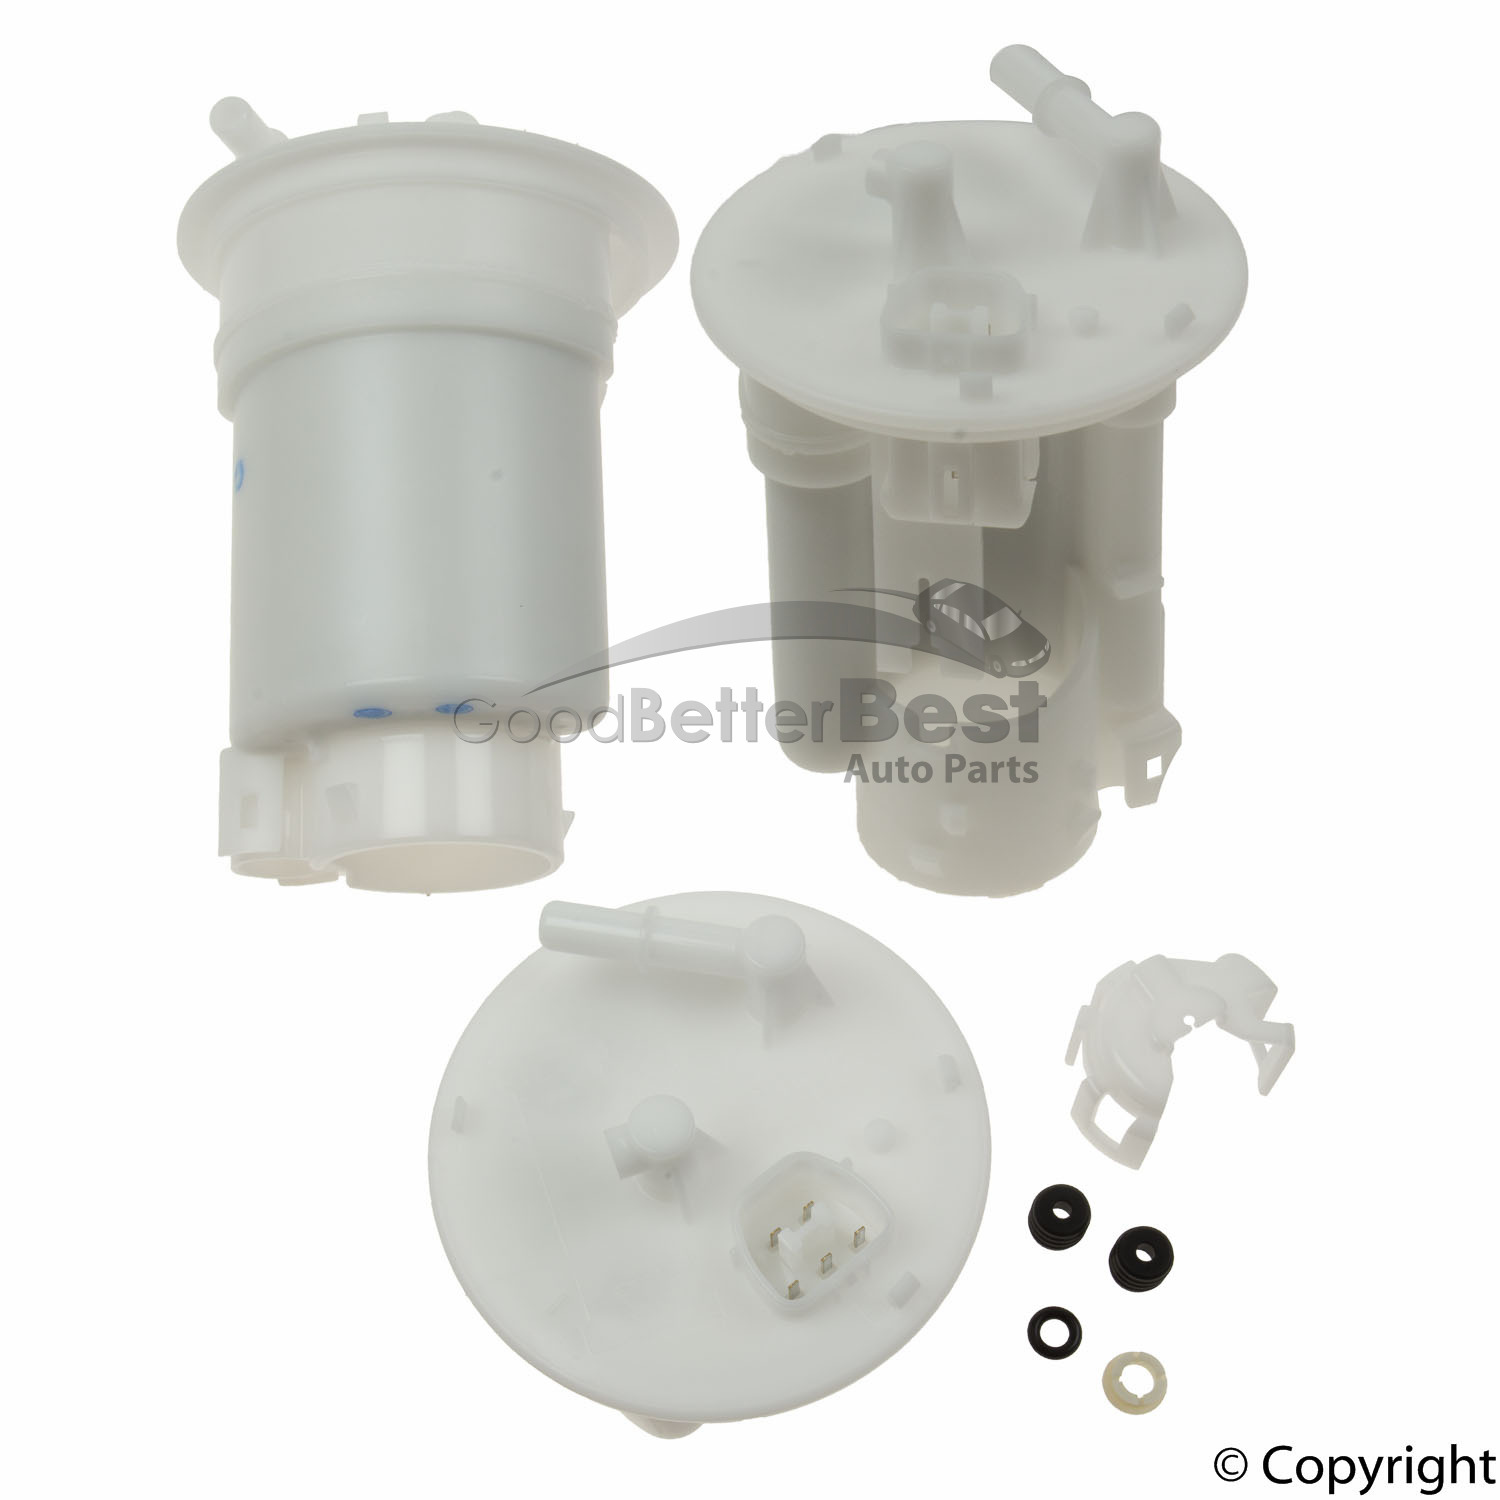 hight resolution of details about one new genuine fuel filter 16010sdcl00 for honda accord